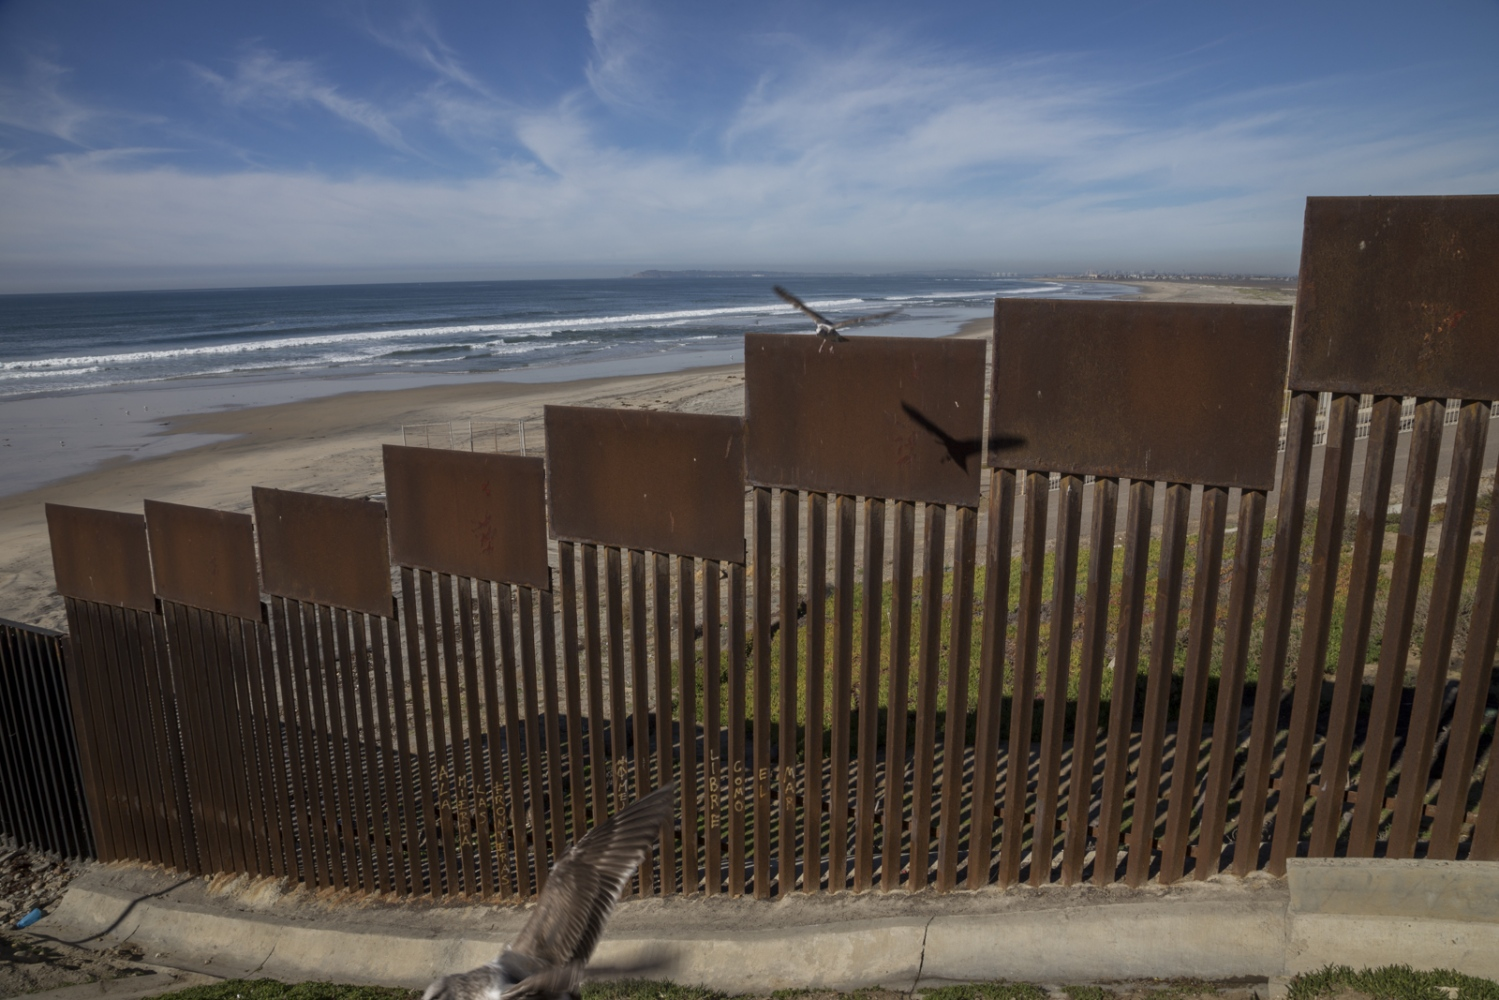 View of the U.S.-Mexico border from Playas de Tijuana, Mexico. The metal fence has been reinforced multiple times since the 1990s and it extends down to the beach stretching out some three hundred feet into the Pacific Ocean.